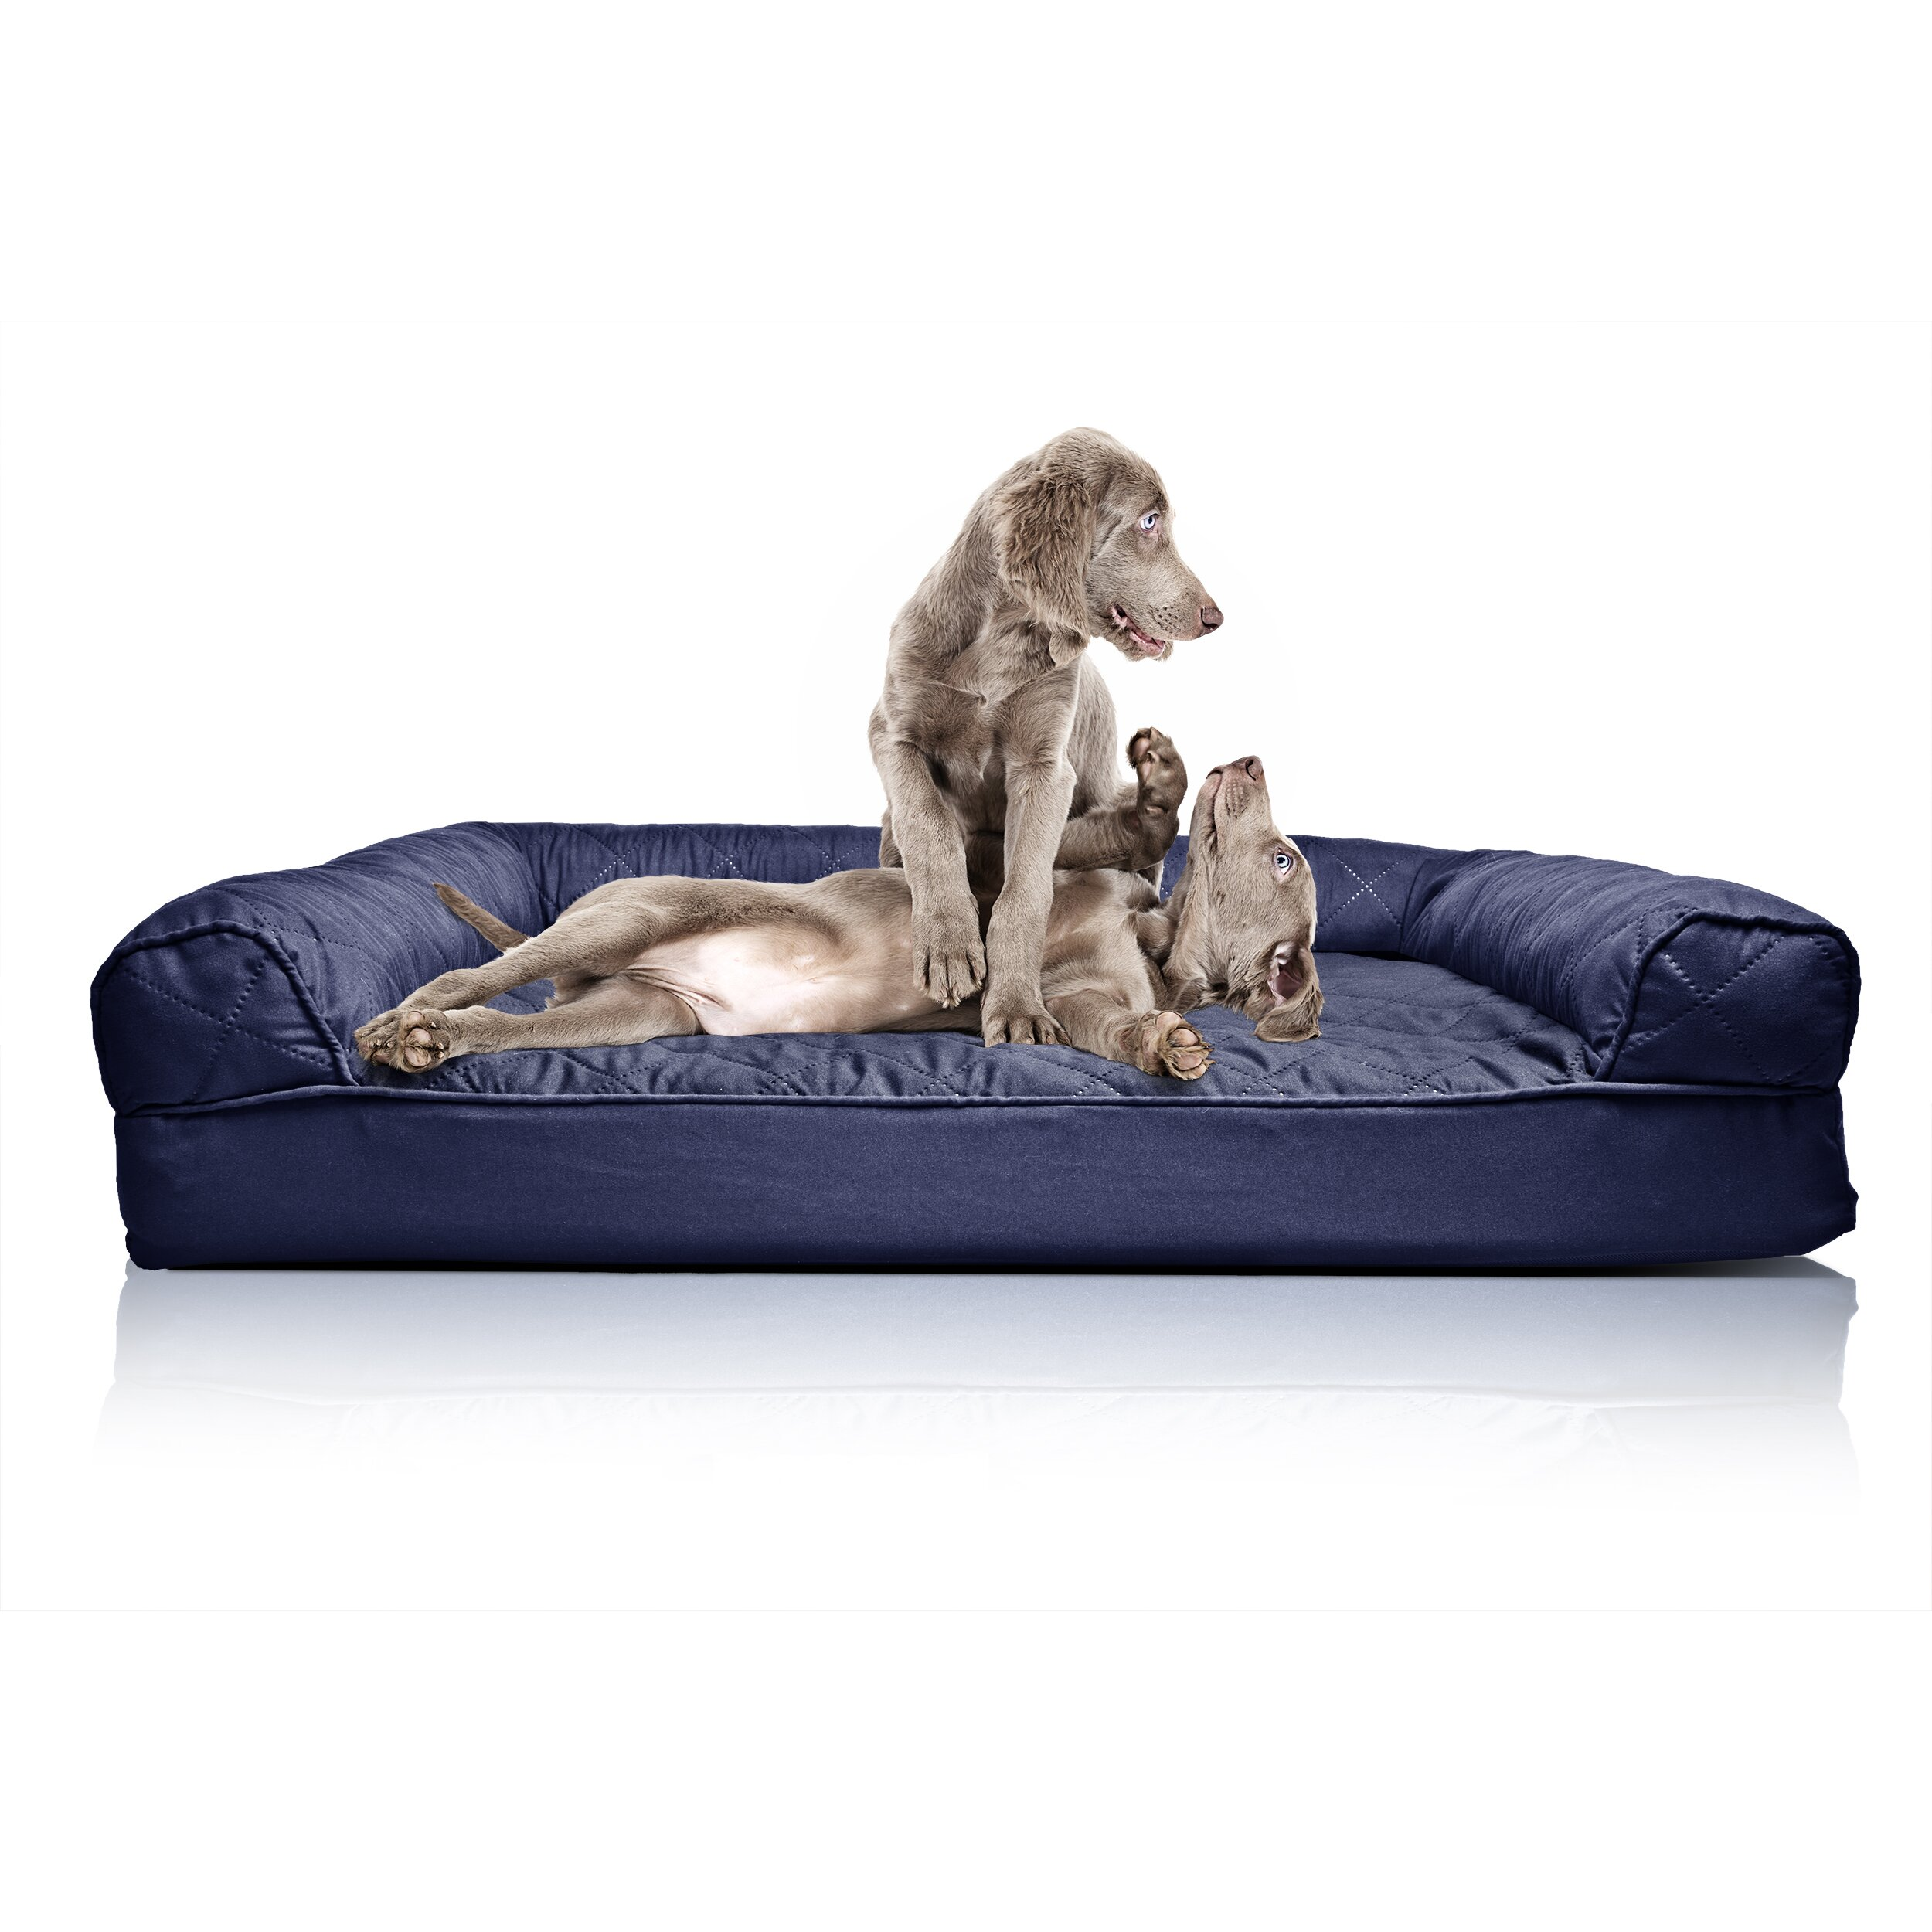 zoey tails quilted orthopedic sofa style dog bed reviews